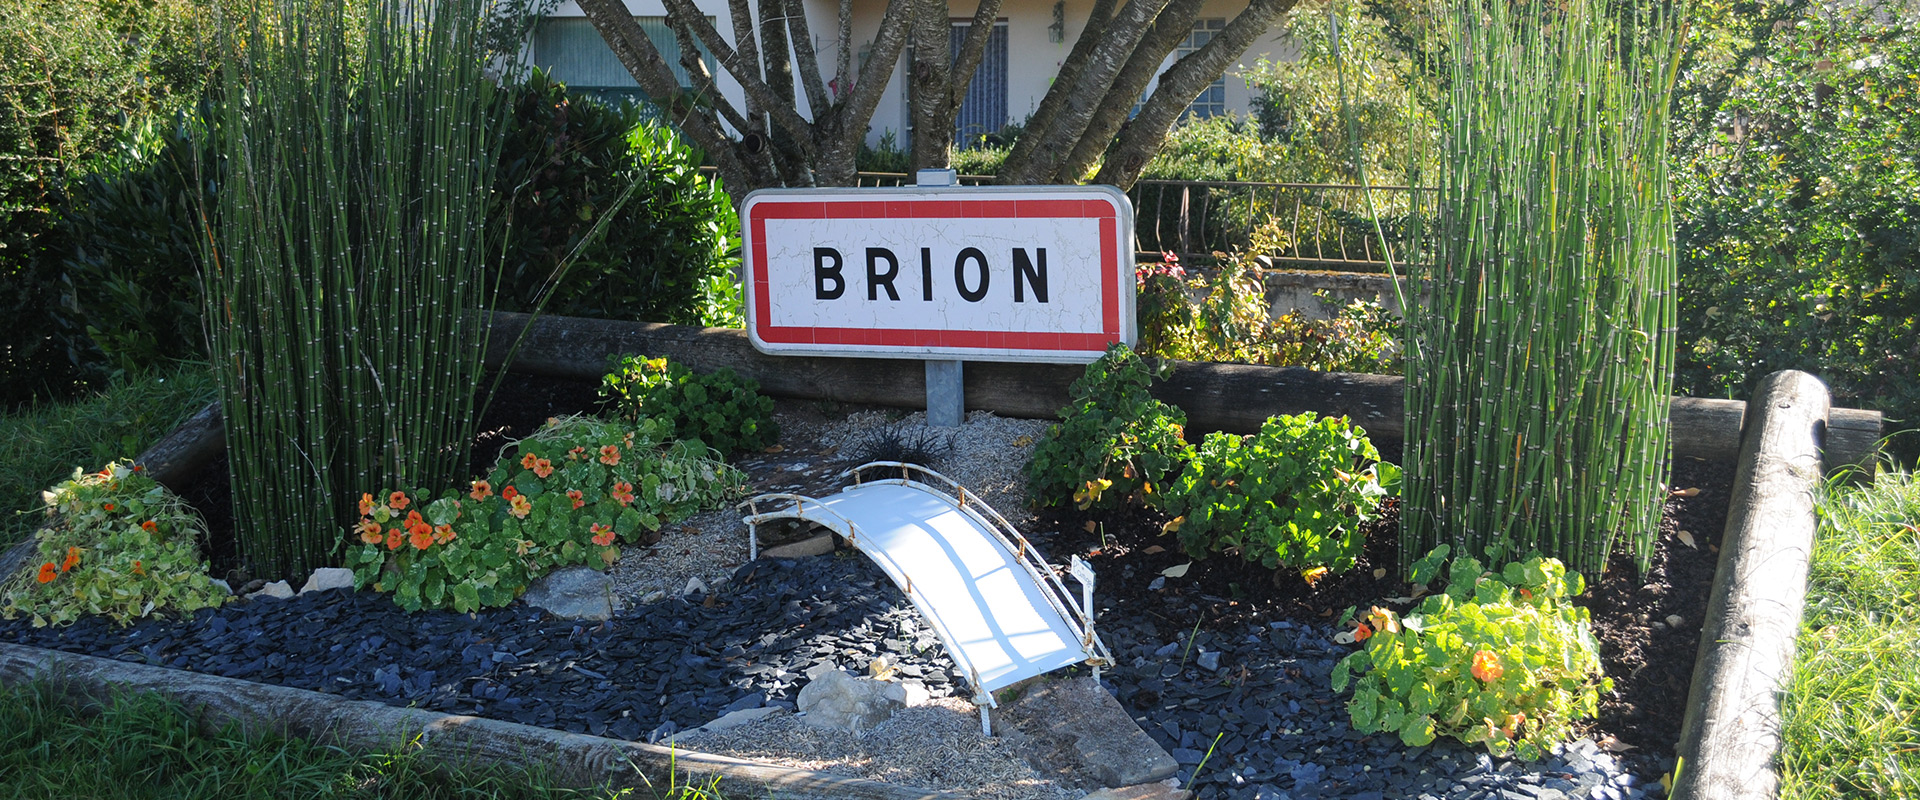 Village de Brion - Graines de l'Ain